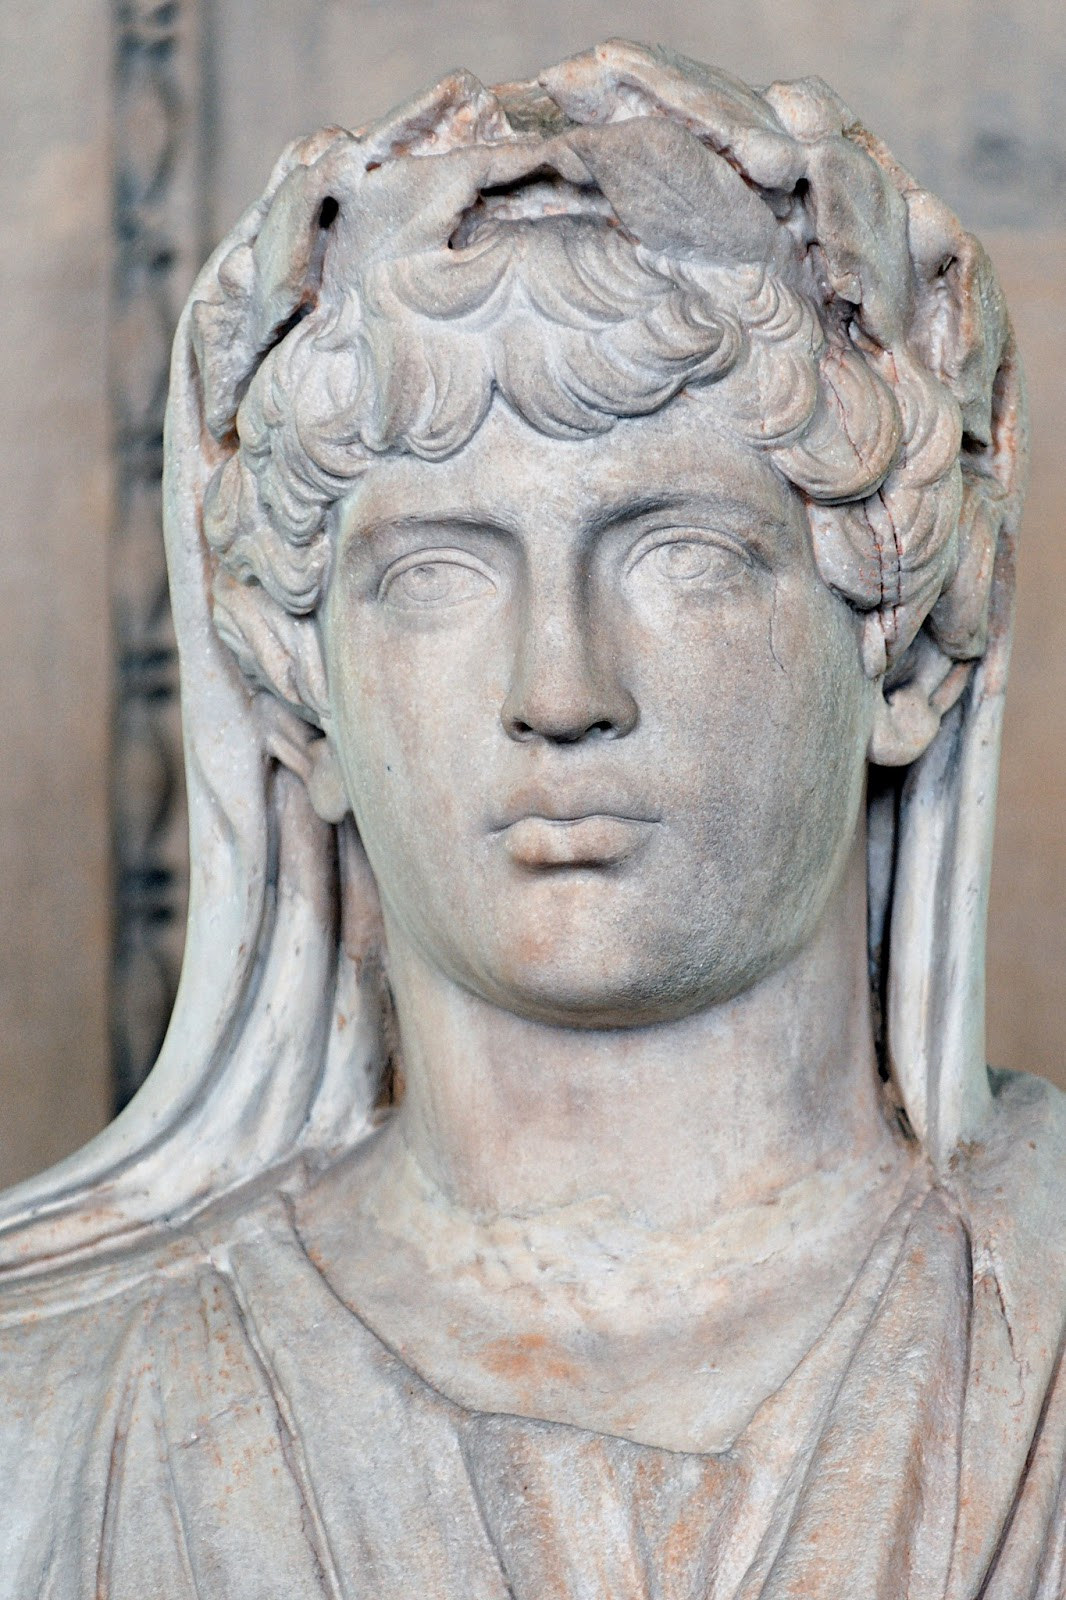 Reinette Ancient Roman Hairstyles And Headdresses During